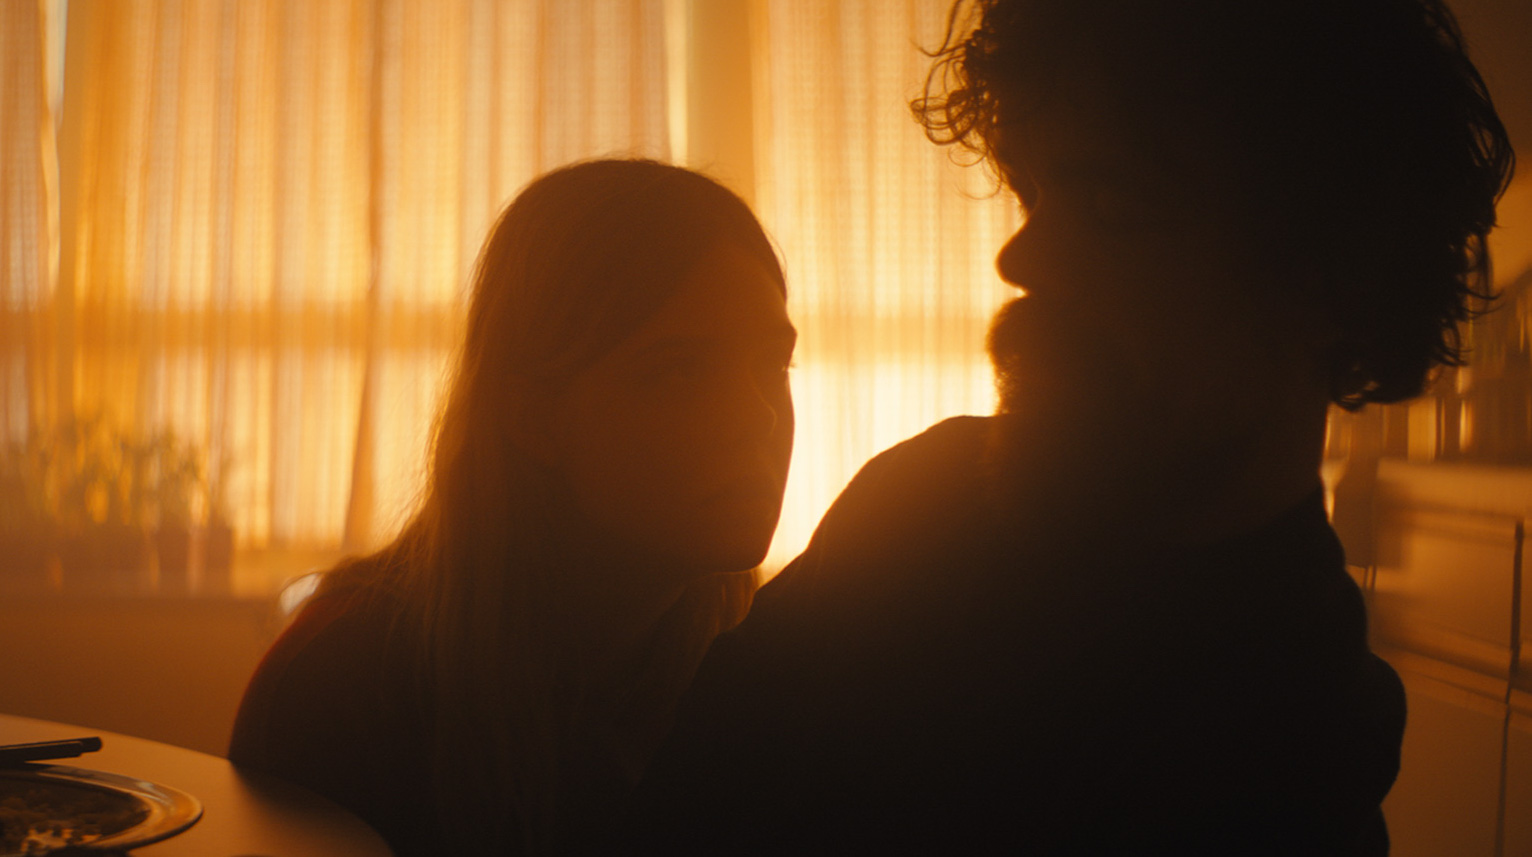 Elle Fanning and Peter Dinklage appear in <i>I Think We're Alone Now</i> by Reed Morano, an official selection of the U.S. Dramatic Competition at the 2018 Sundance Film Festival. Courtesy of Sundance Institute. All photos are copyrighted and may be used by press only for the purpose of news or editorial coverage of Sundance Institute programs. Photos must be accompanied by a credit to the photographer and/or 'Courtesy of Sundance Institute.' Unauthorized use, alteration, reproduction or sale of logos and/or photos is strictly prohibited.